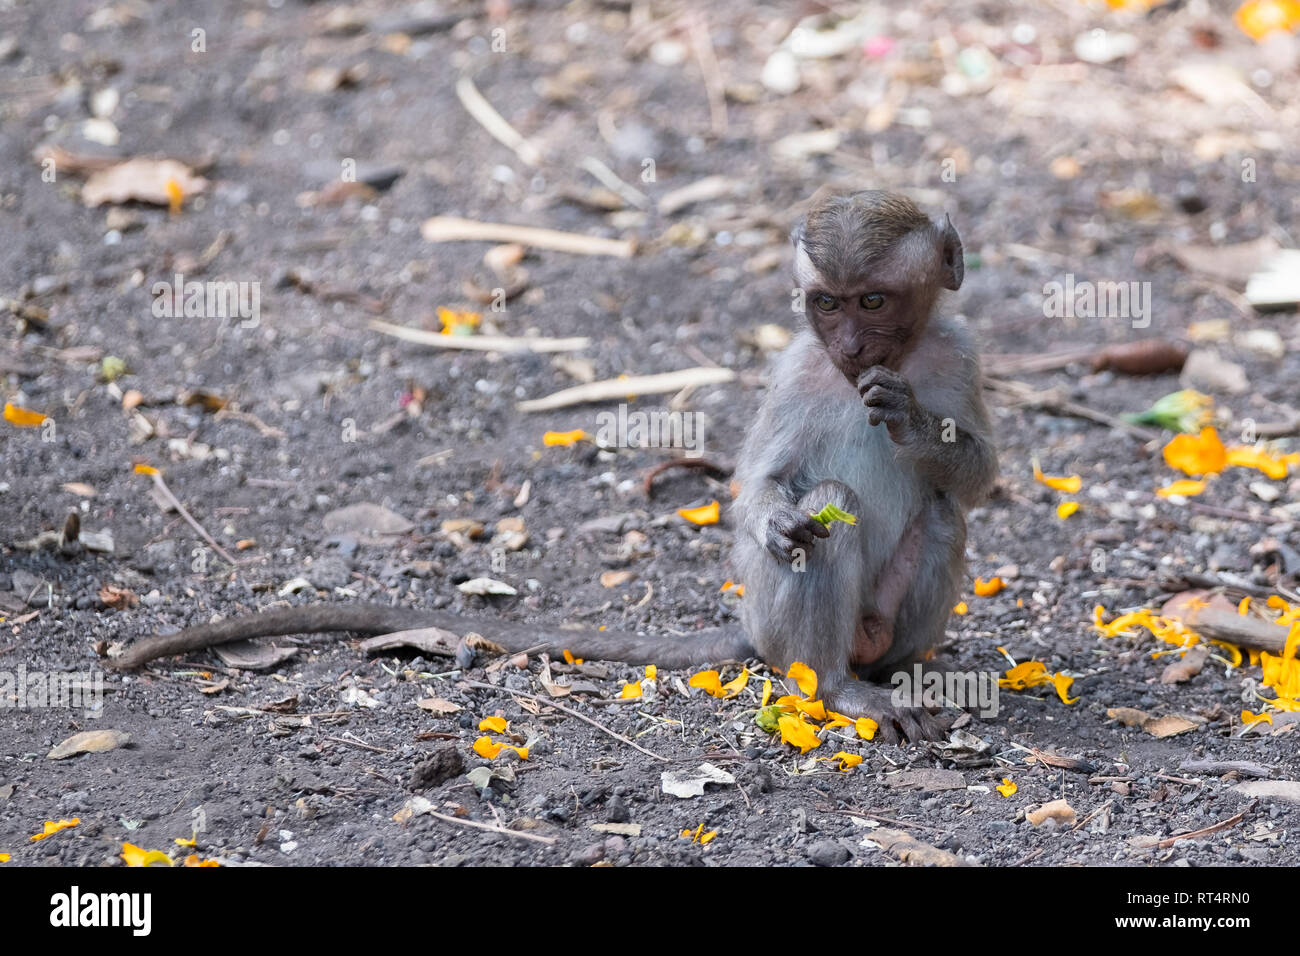 macaque (Macaca fascicularis), eats leaves from tree, Bali, Indonesia Stock Photo